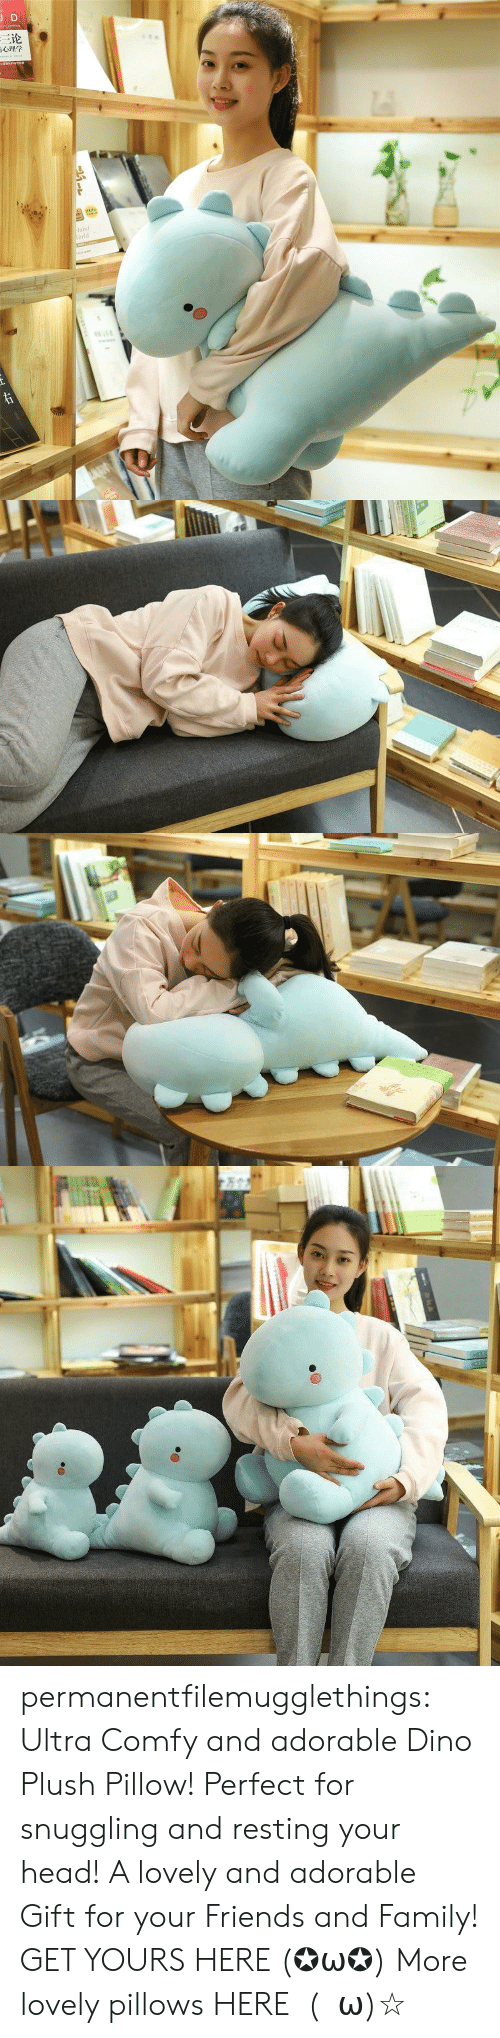 Family, Friends, and Head: JD  三论  laint  orld  TDNAR  ww.e permanentfilemugglethings: Ultra Comfy and adorable Dino Plush Pillow! Perfect for snuggling and resting your head! A lovely and adorable Gift for your Friends and Family! GET YOURS HERE (✪ω✪) More lovely pillows HERE  (・ω)☆